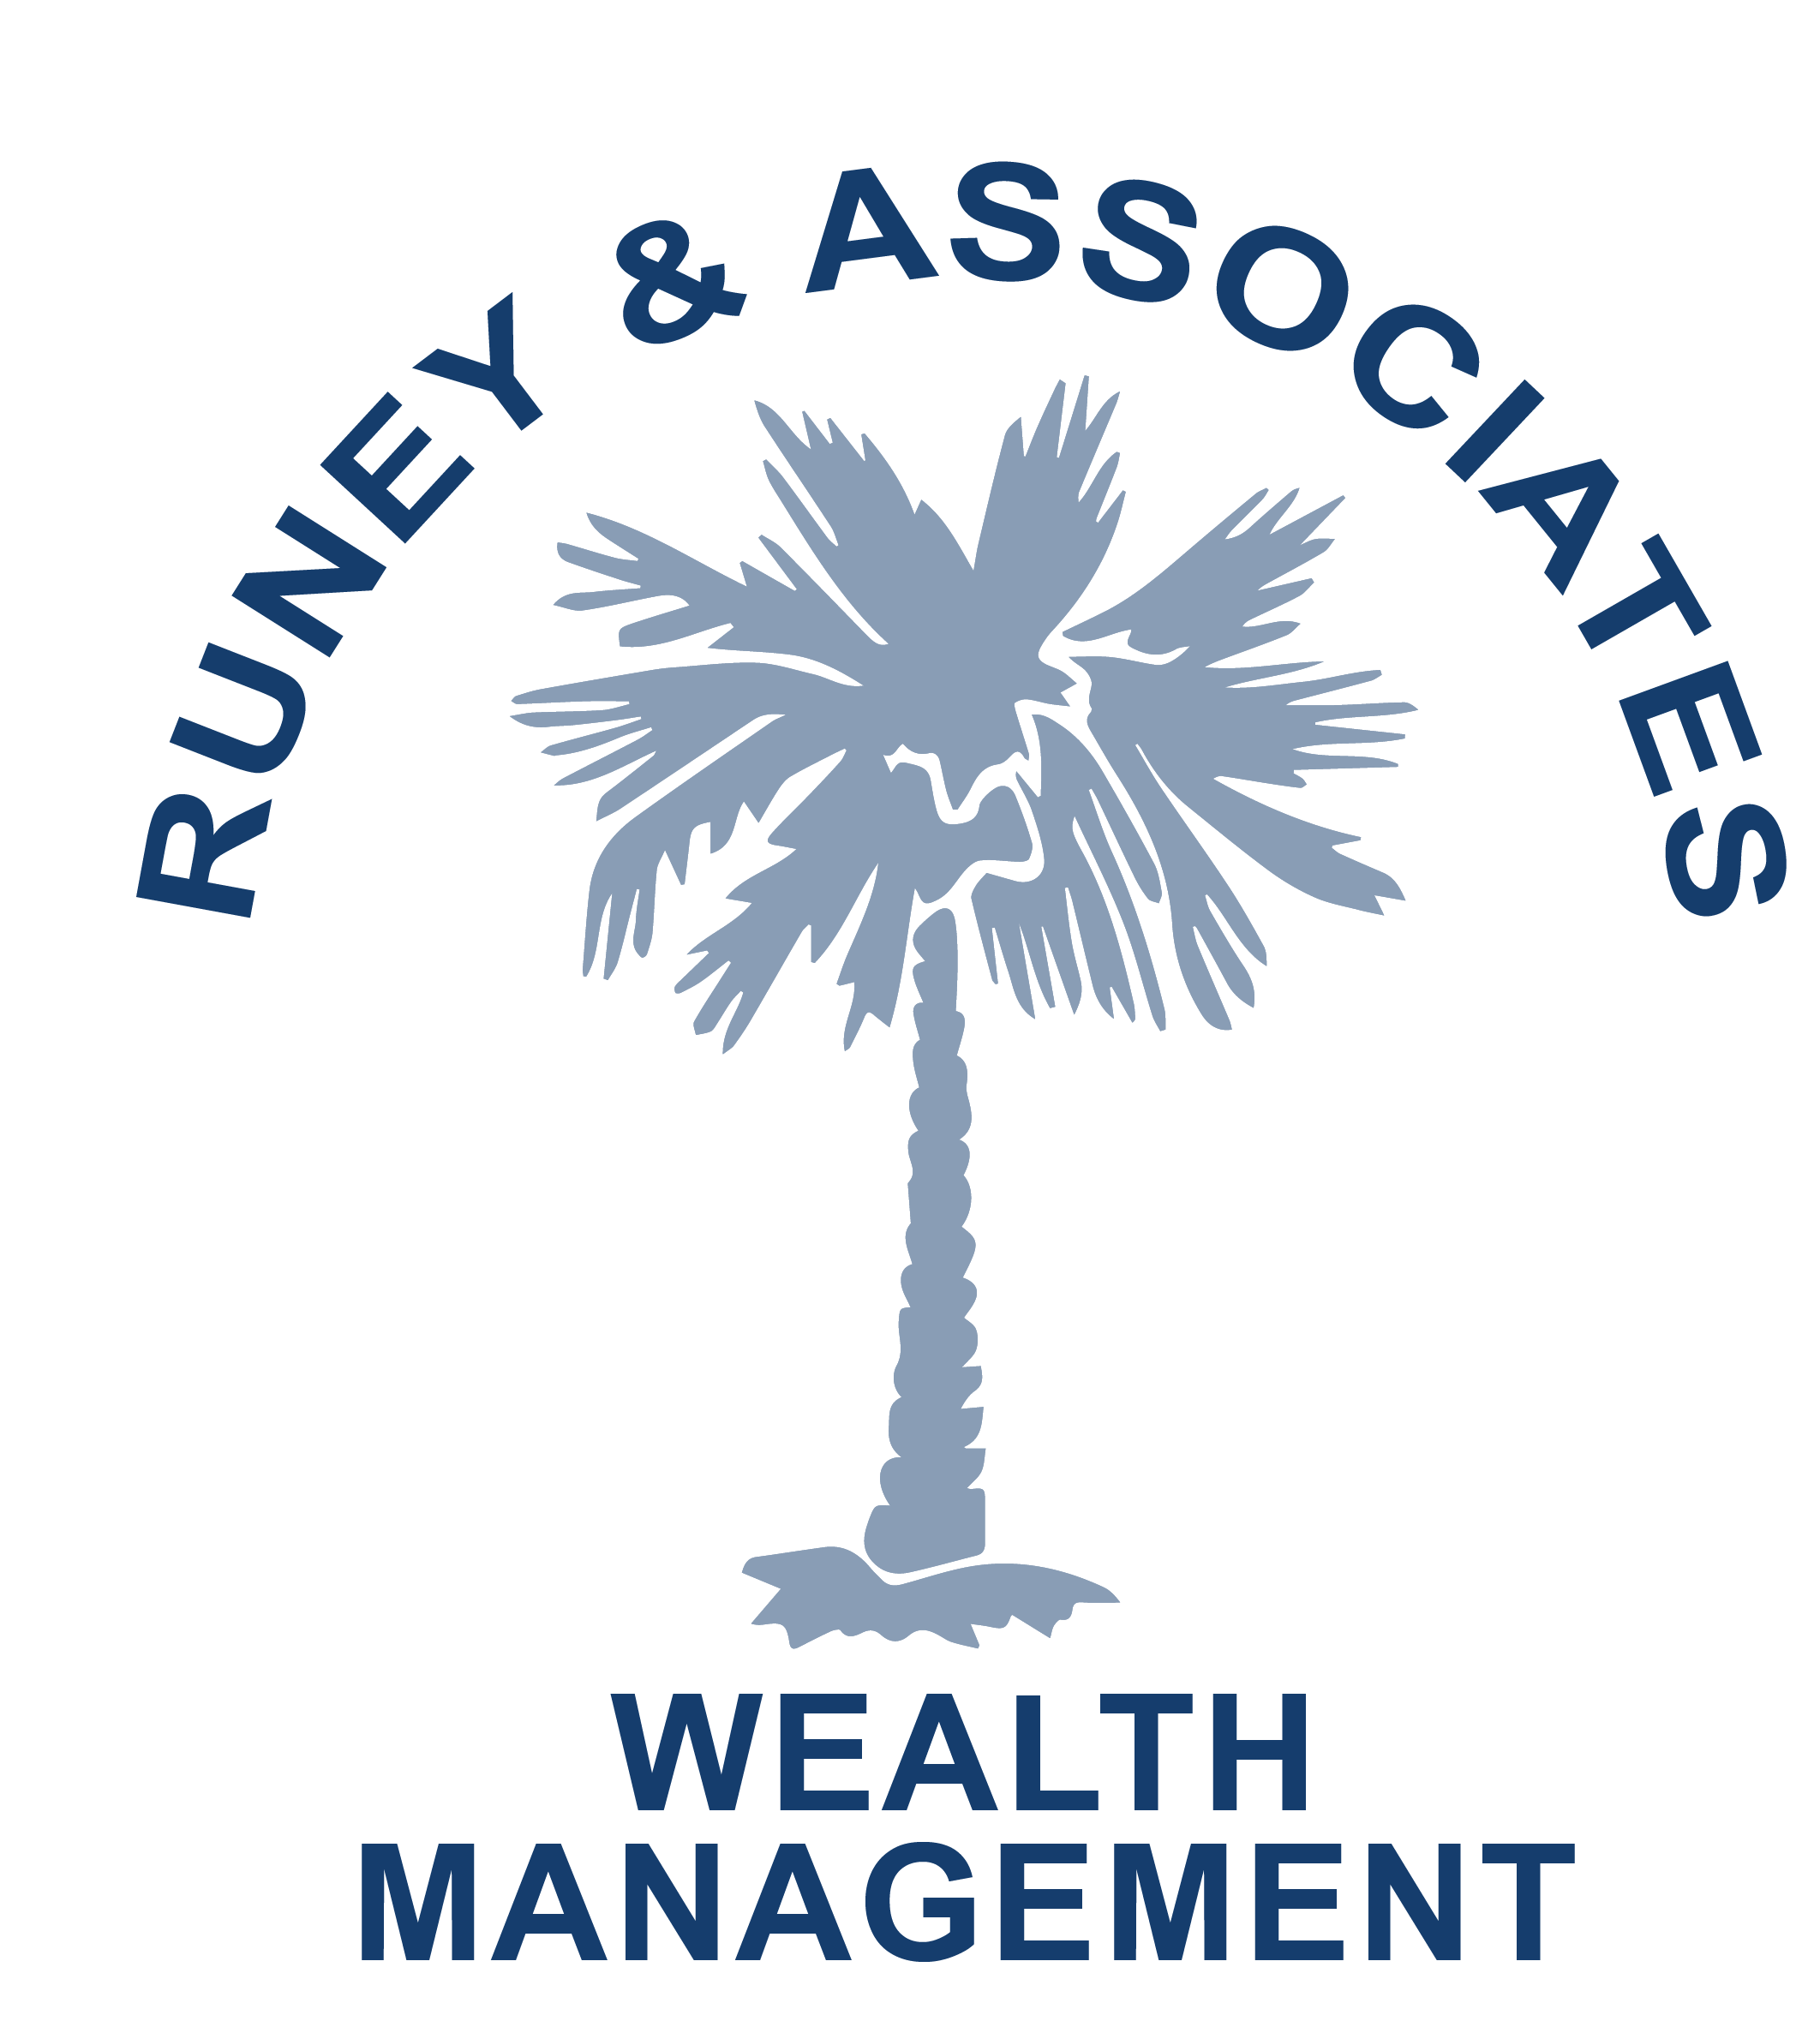 In our blog posts, Retire on Your Terms, we at Runey & Associates Wealth Management will communicate our thoughts, opinions, industry research, etc. as they relate to the financial planning and wealth management realm. We focus primarily on retirement strategies for retirees and pre-retirees in the Charleston, South Carolina and Mount Pleasant, South Carolina geographic area.